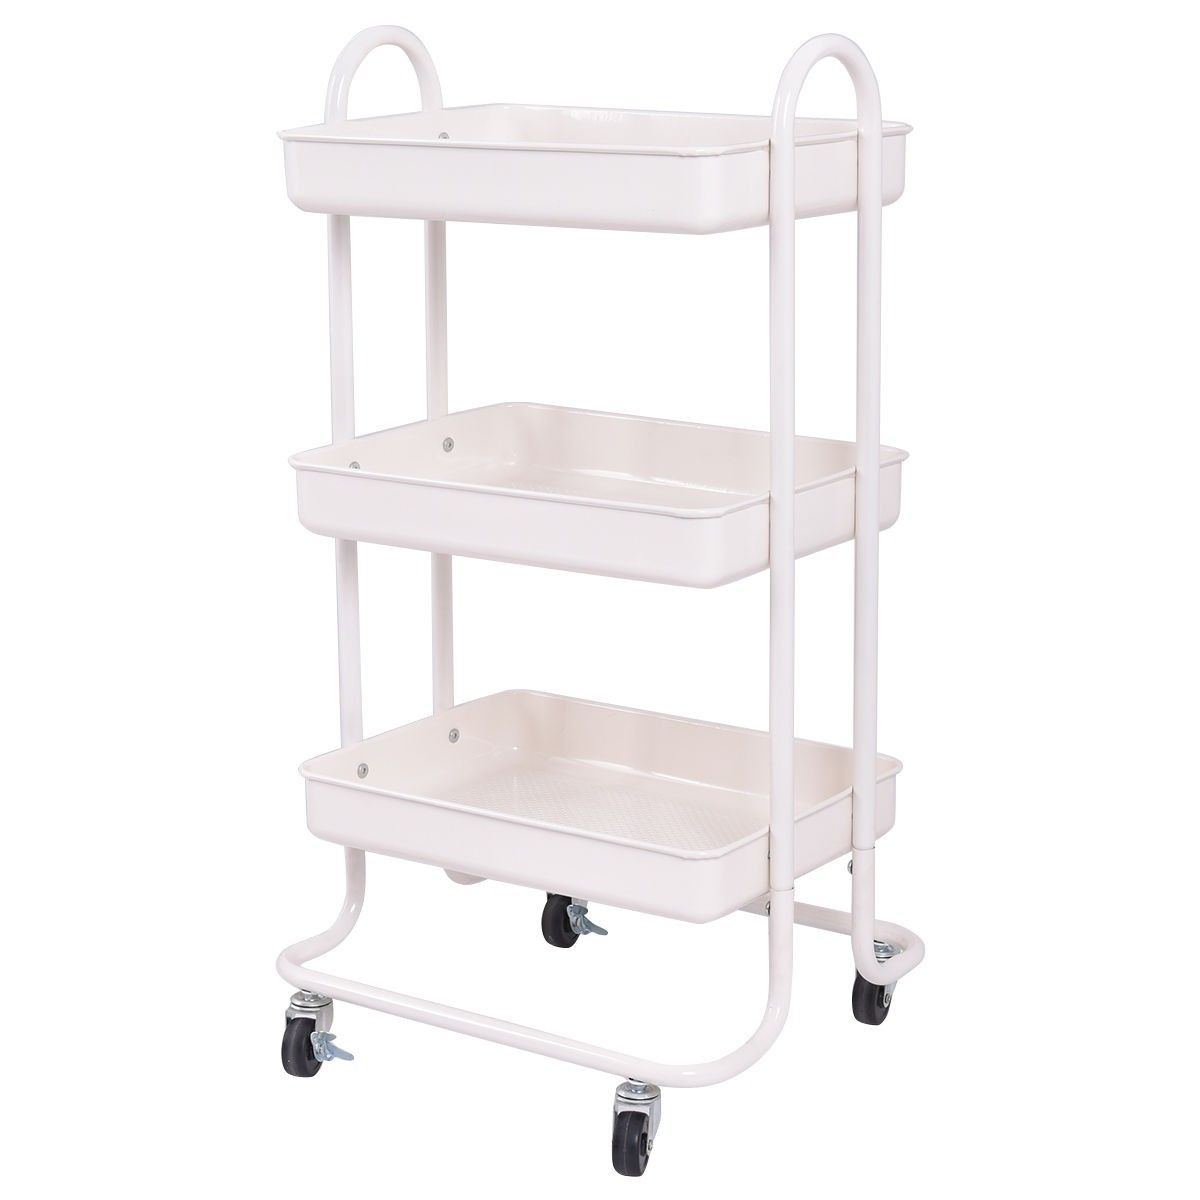 Tier steel rolling kitchen trolley cart storage kitchen serving